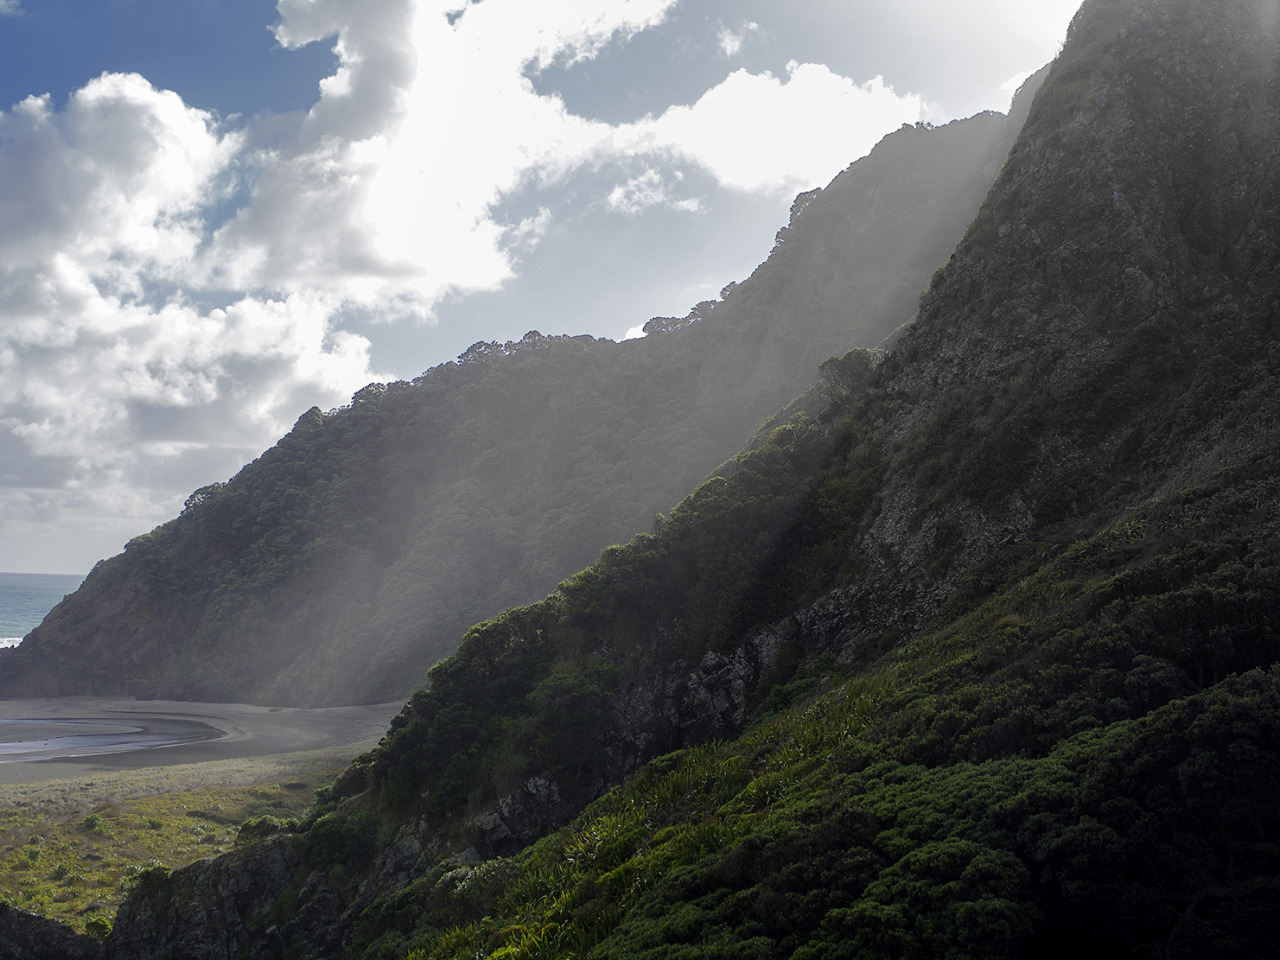 The hills of Karakare Beach, New Zealand. Jurassic park except we have birds that may or may not kill on sight when given the attack word. Olympus OM-D EM-5